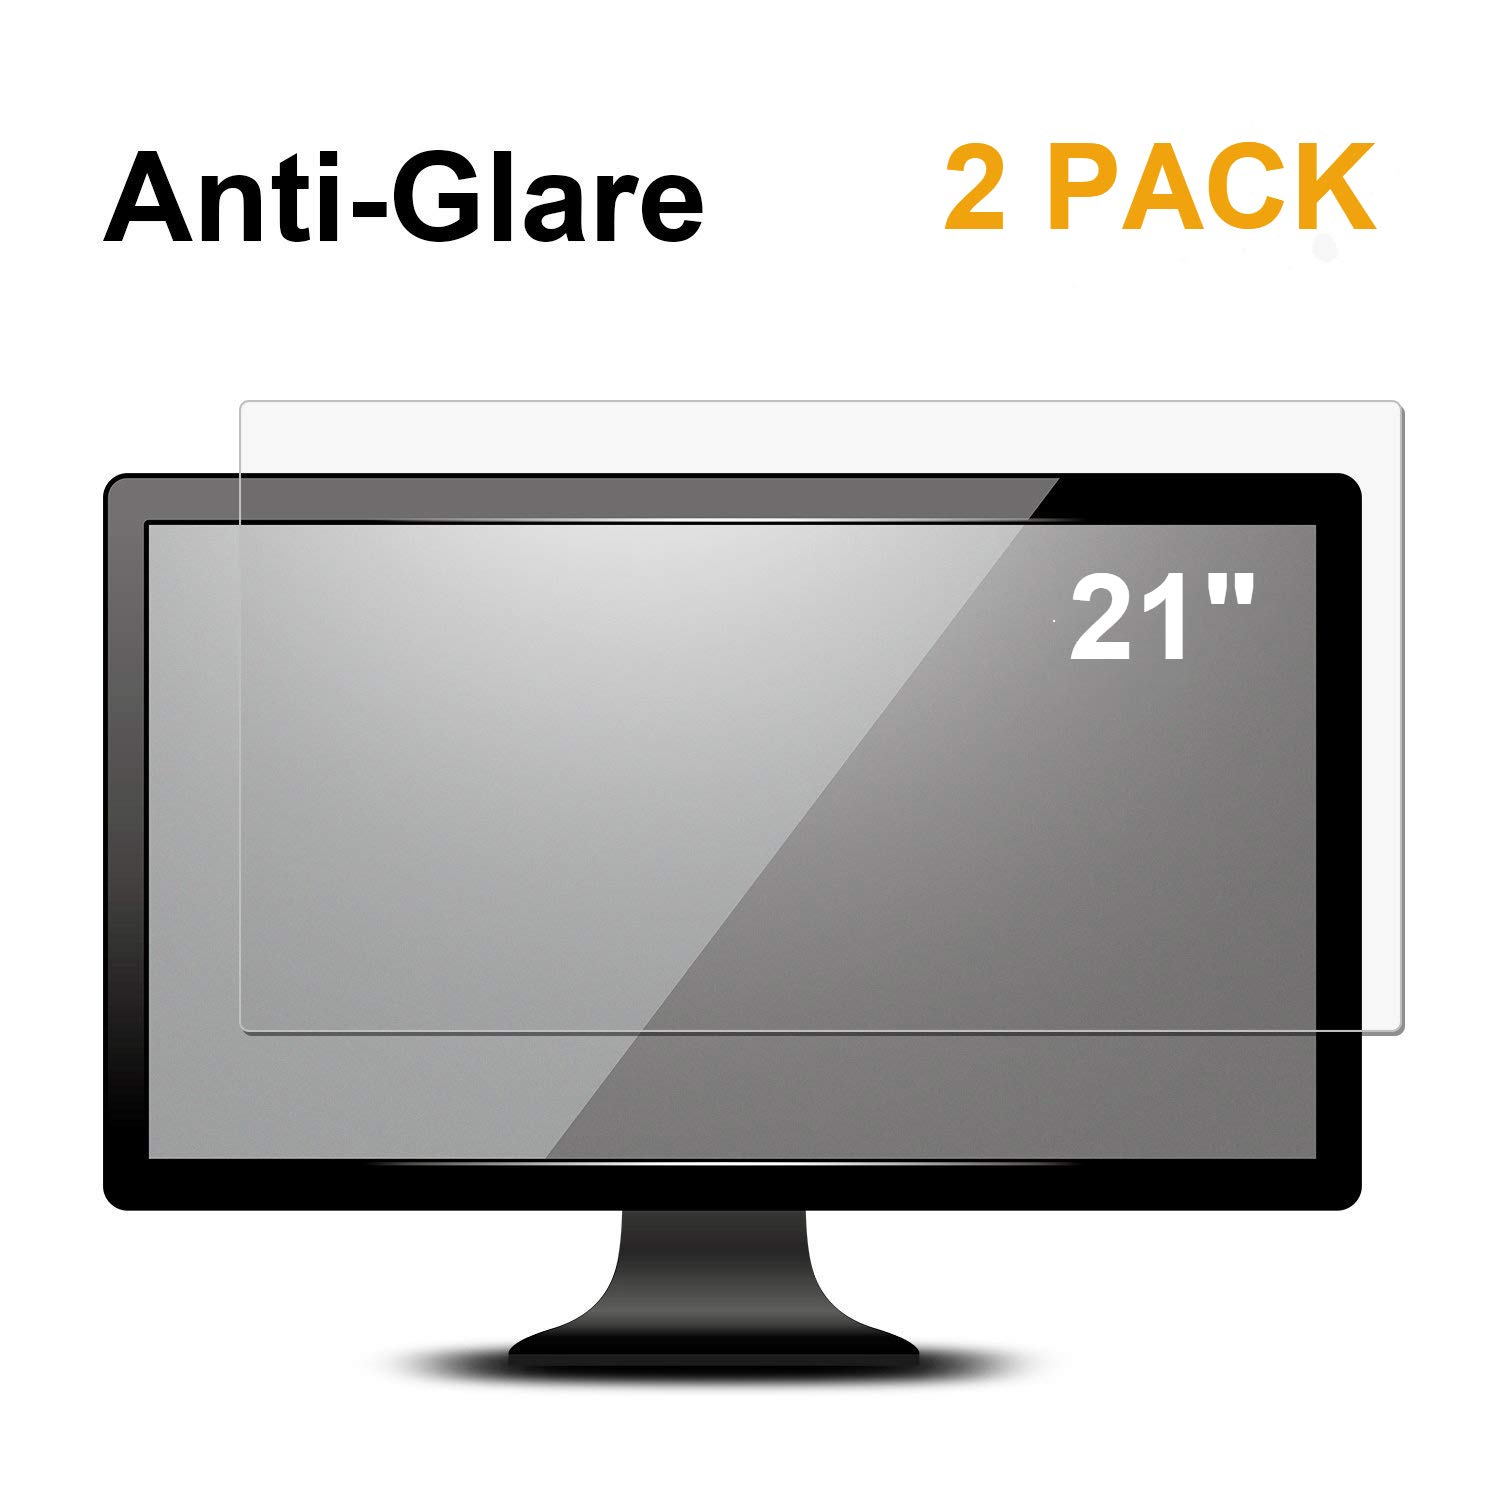 "[2 Pack] 21.5 inch Anti Glare (Matte) Screen Protector Compatible for 21.5"" All Brands of Widescreen Desktop with 16:9 Aspect Ratio Display Monitor [Not for a 16:10 Monitor]"